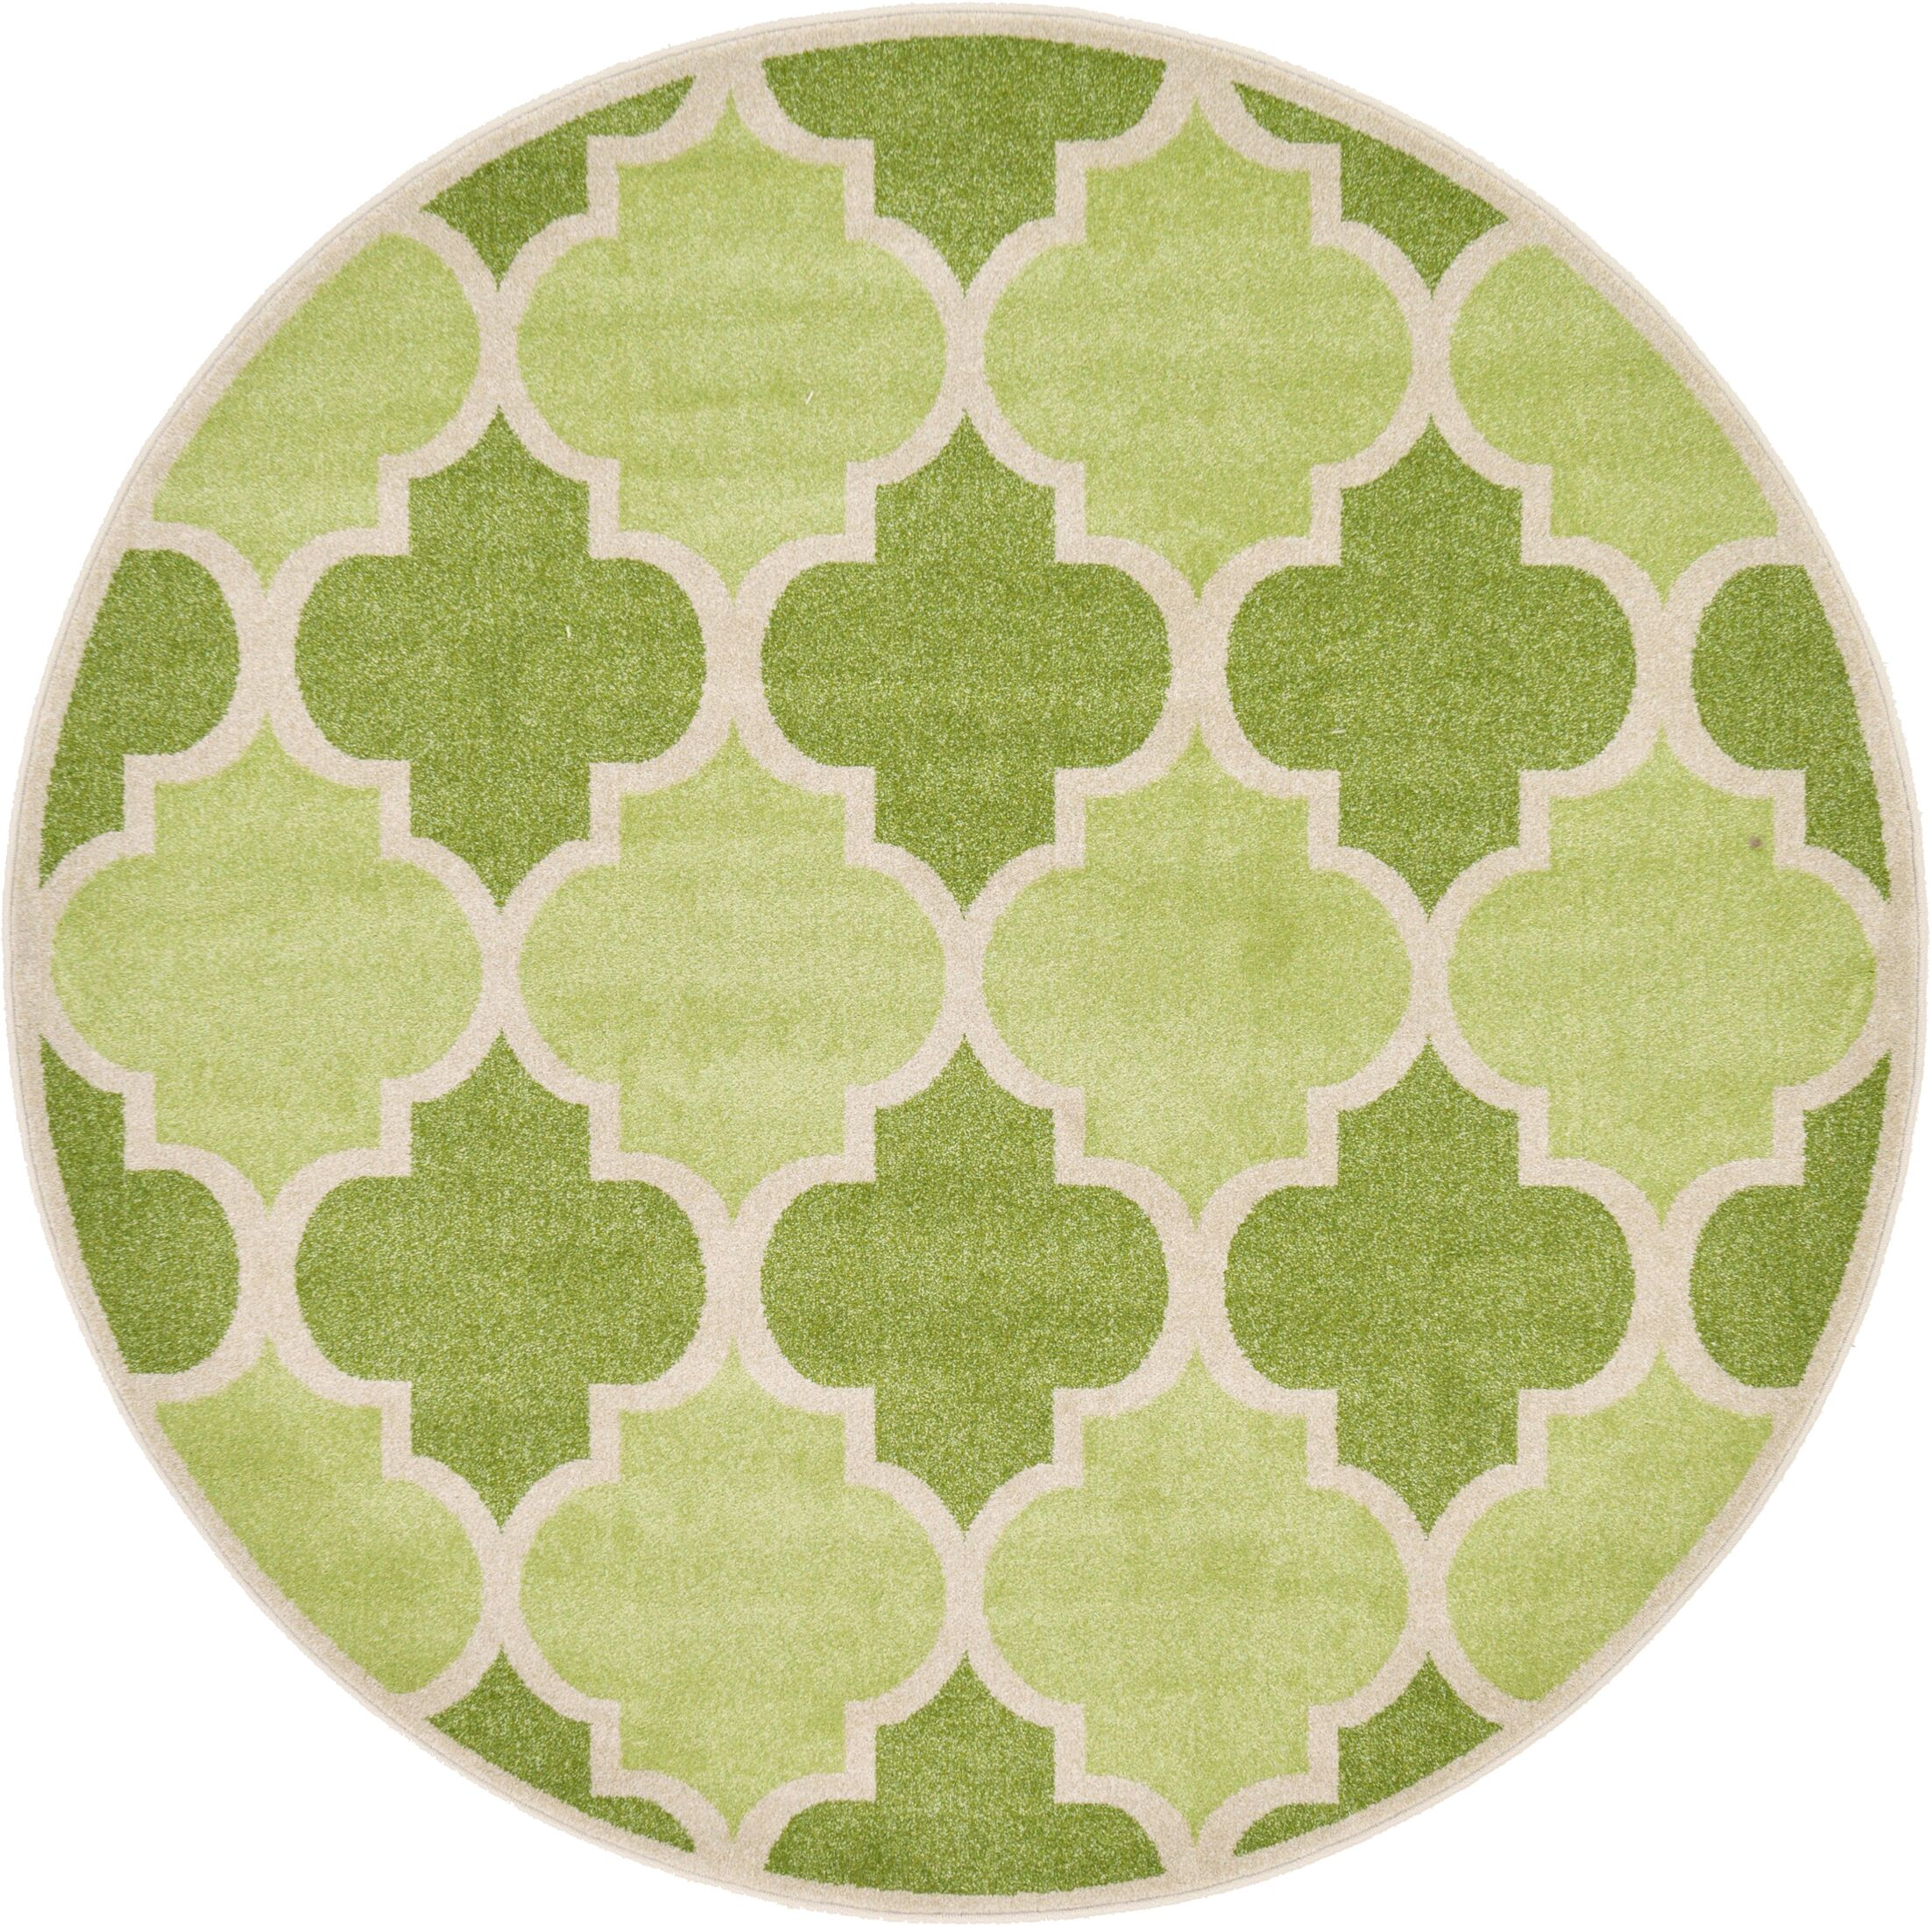 Moore Green Area Rug Rug Size: Round 6'